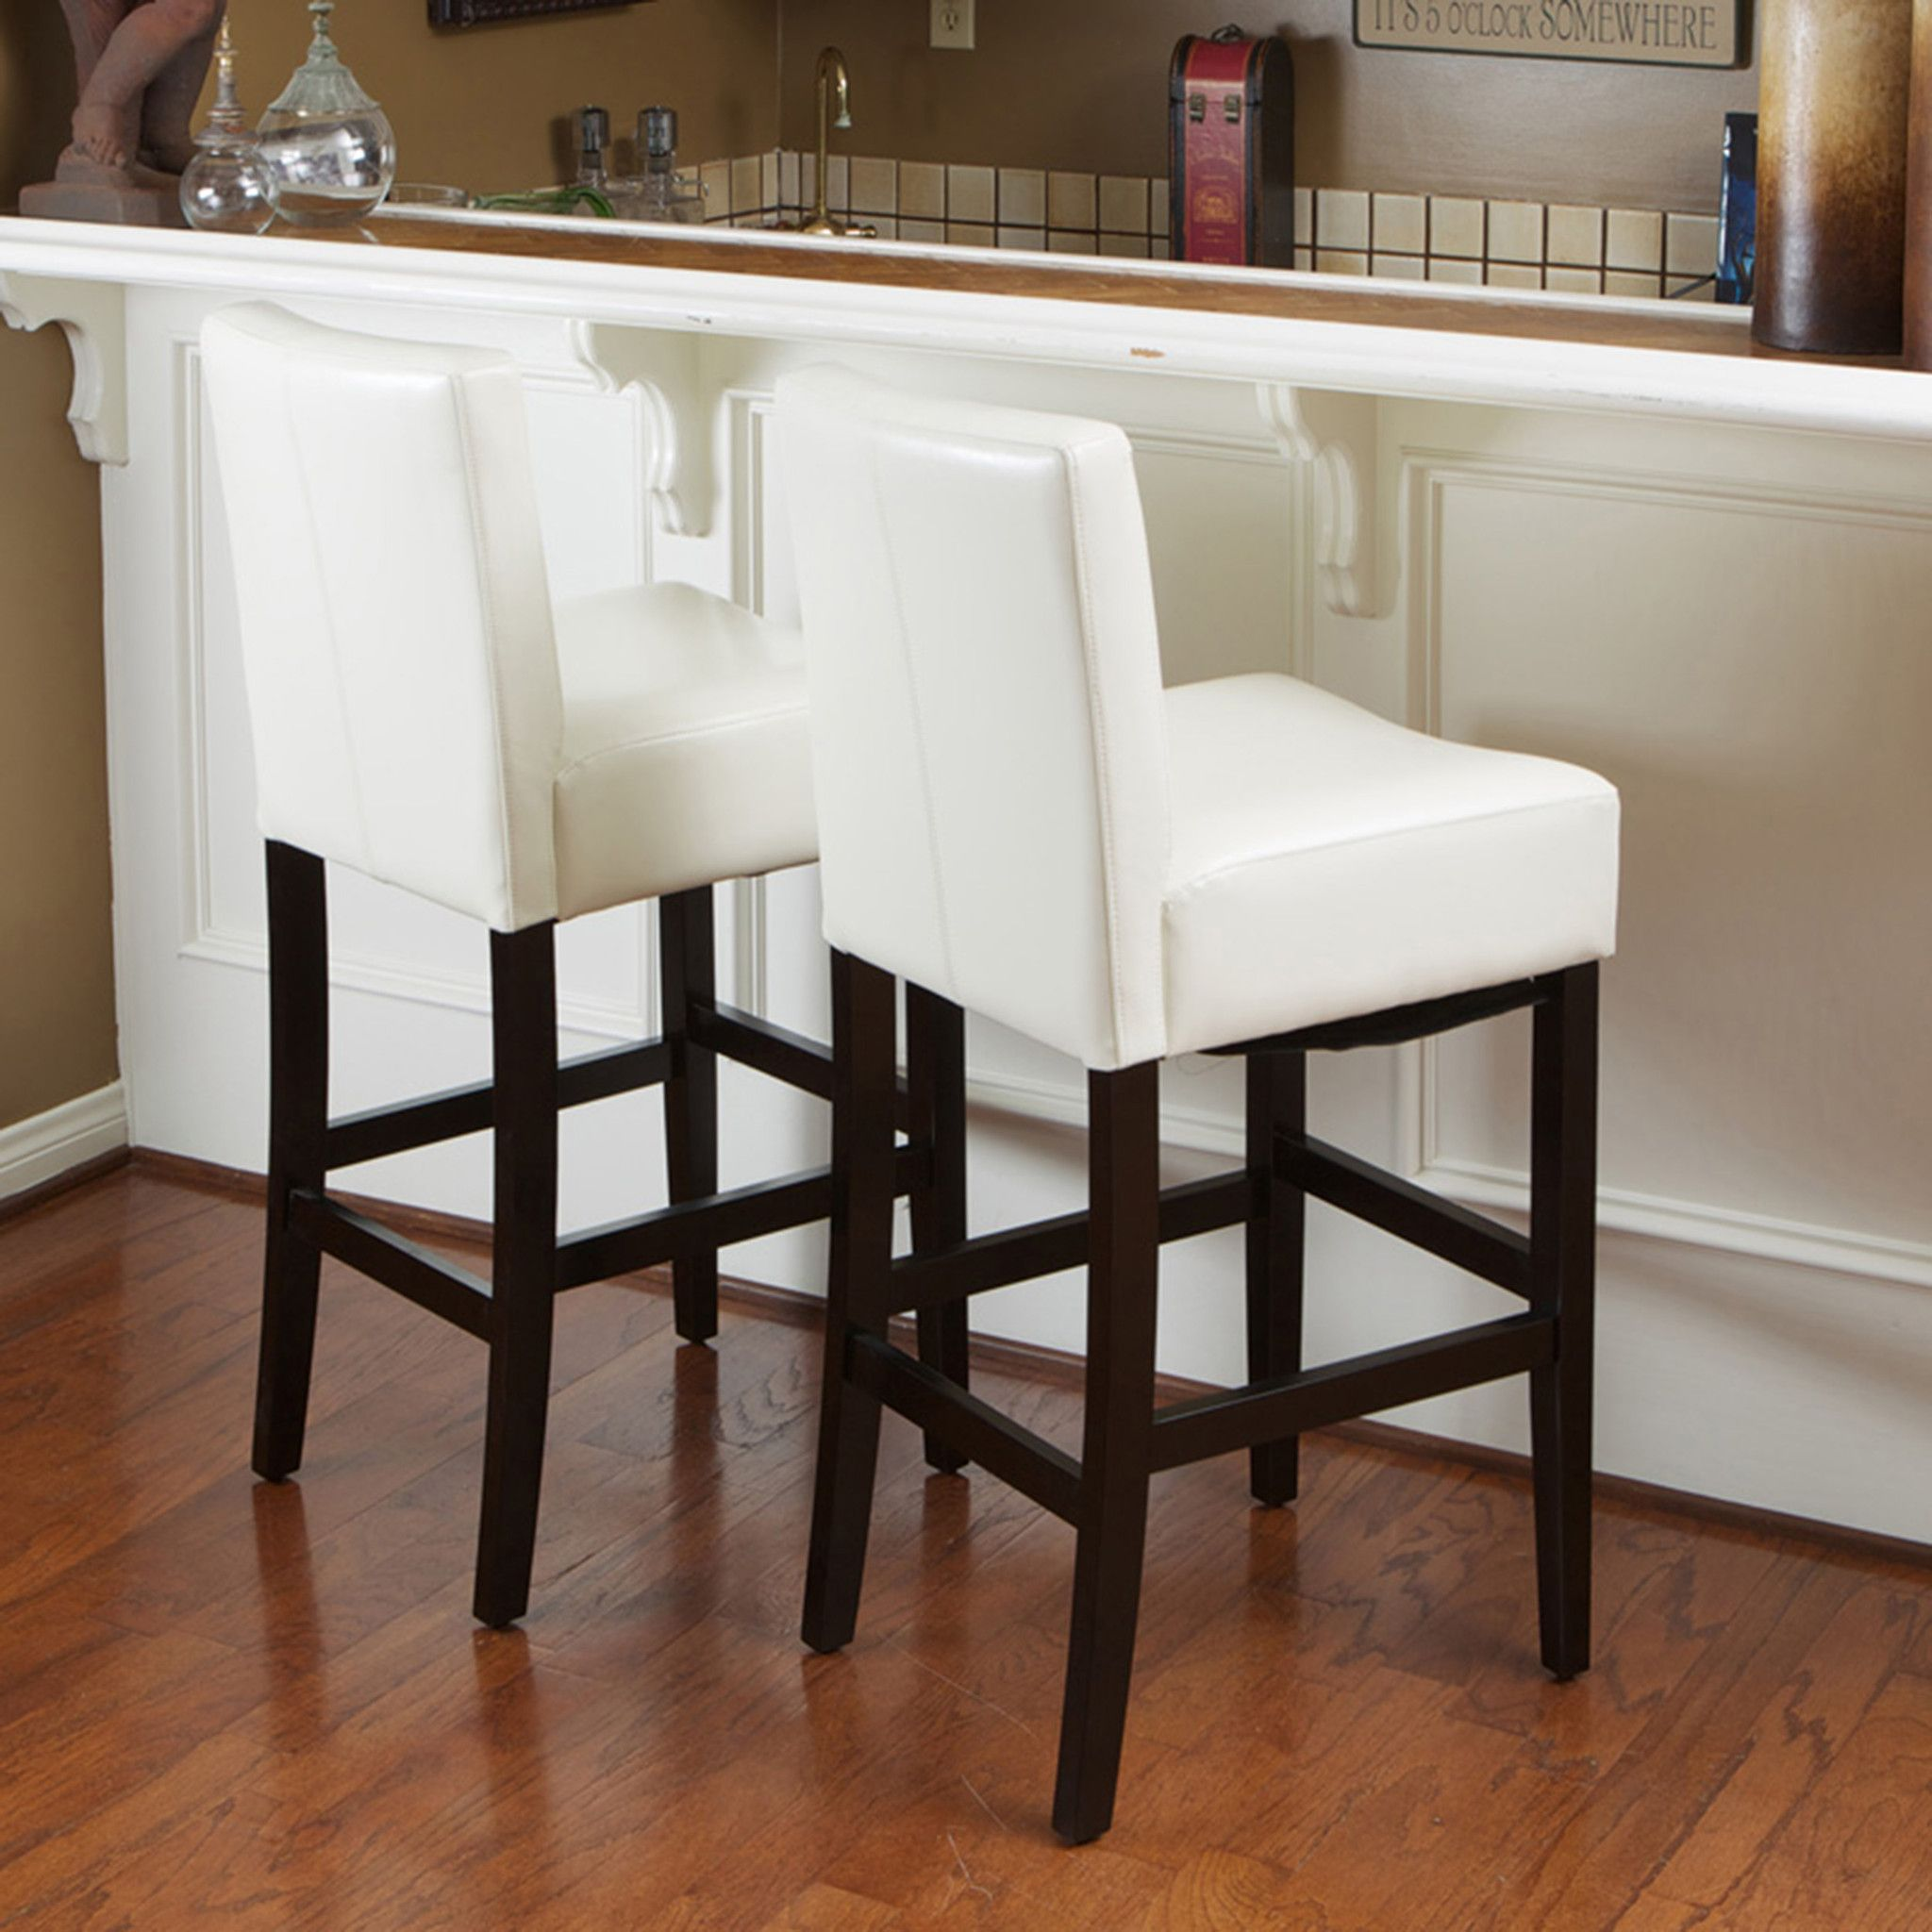 Ad peterborough modern counter stool set of these counter stools